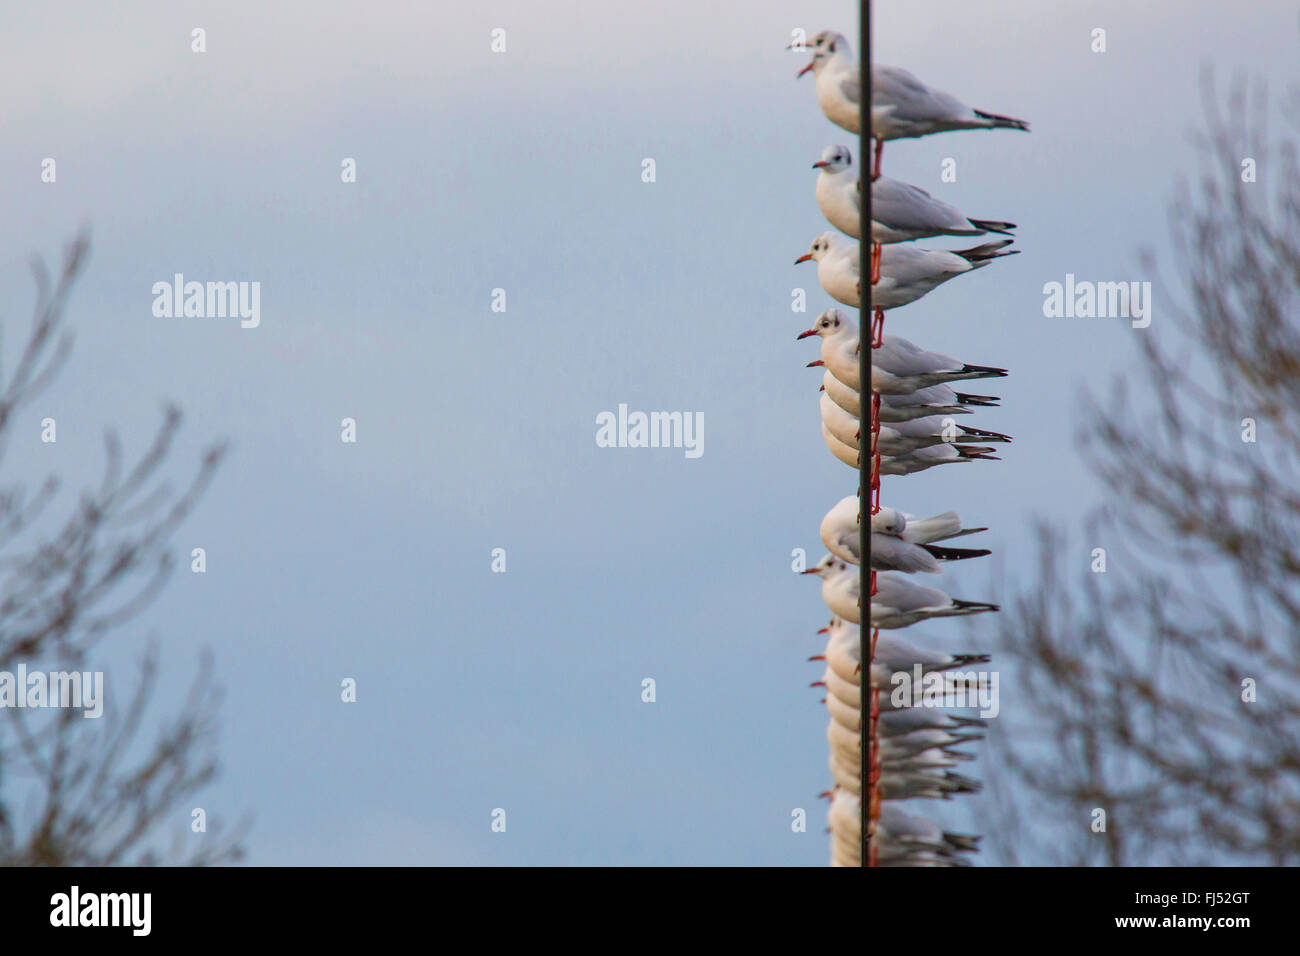 black-headed gull (Larus ridibundus, Chroicocephalus ridibundus), troop on a wire rope, Germany, Bavaria, Niederbayern, - Stock Image